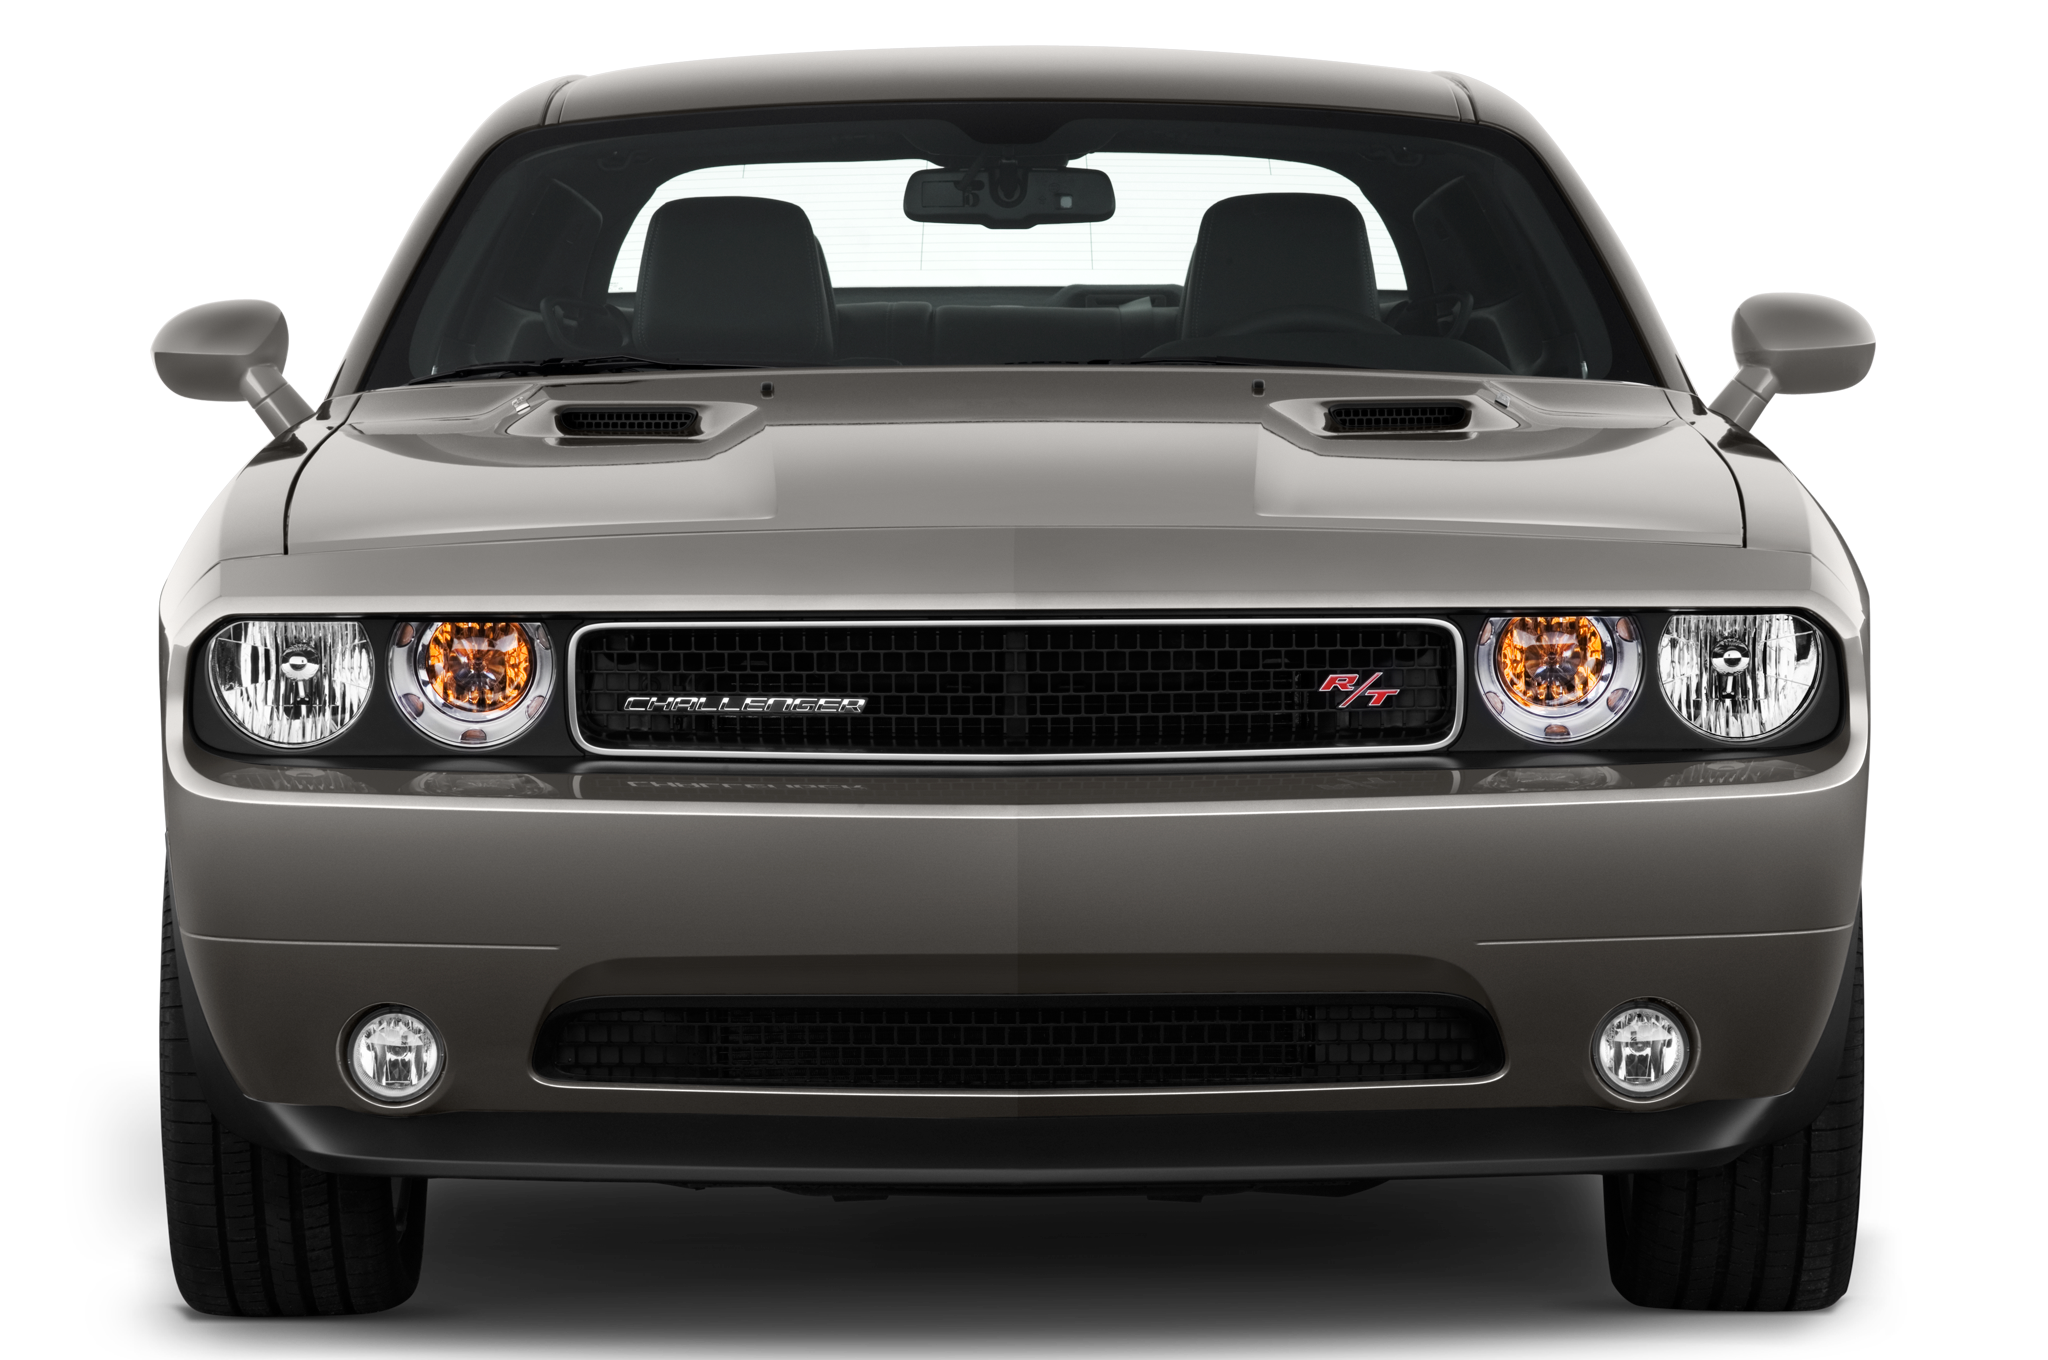 2013 dodge challenger srt8 for sale cargurus autos post. Black Bedroom Furniture Sets. Home Design Ideas